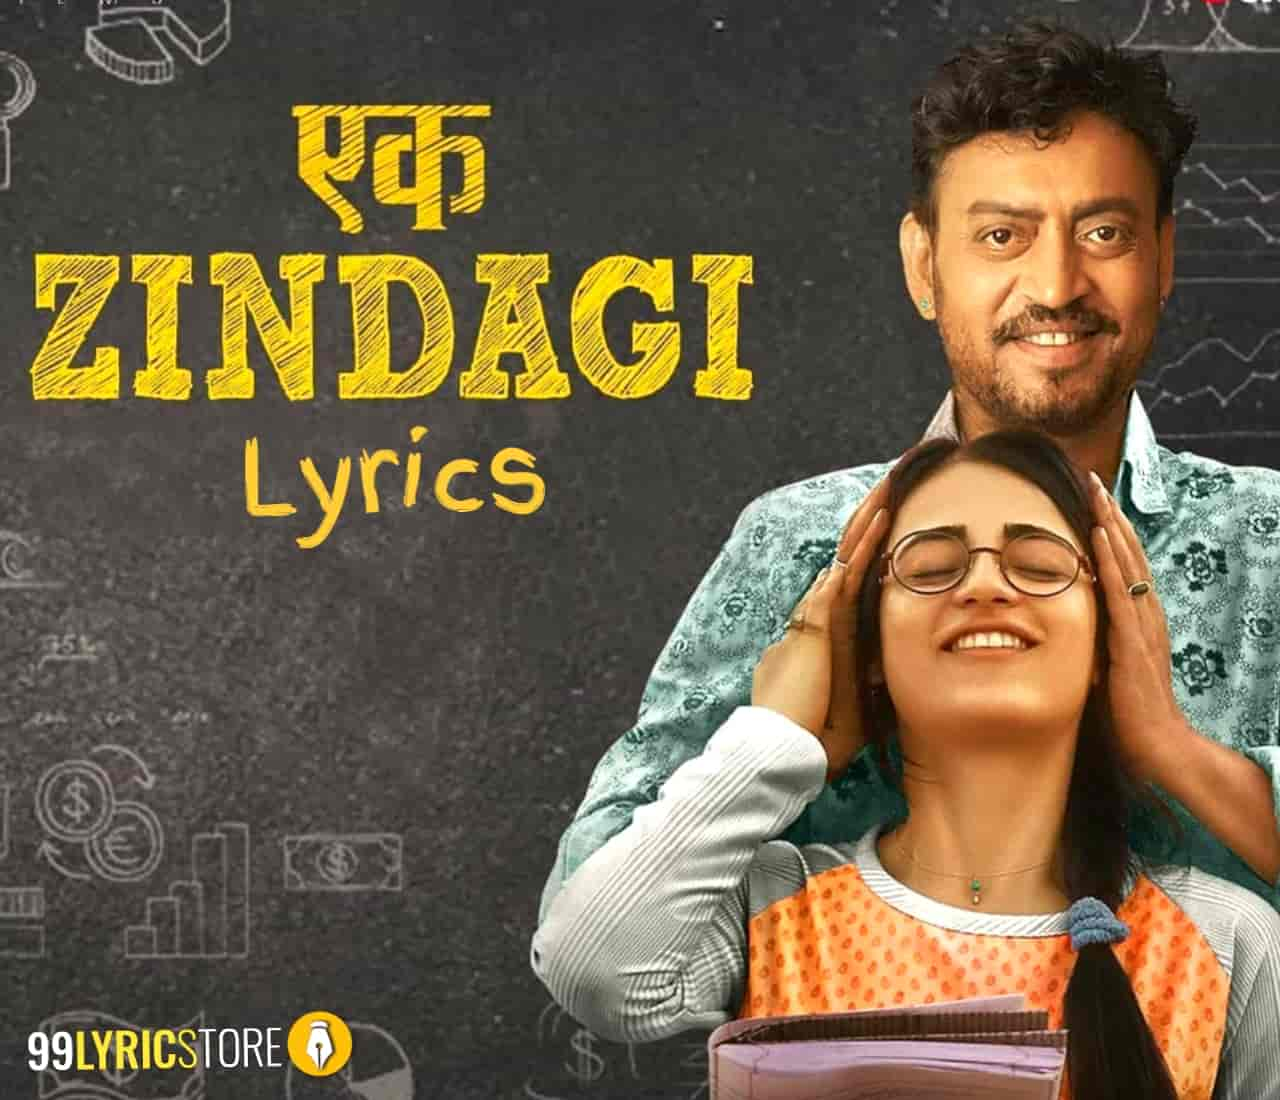 Ek Zindagi Lyrics :- The first very beautiful song Ek Zindagi has released from Irrfan Khan and Kareena Kapoor starrer movie Angrezi Medium which is sung by Tanishkaa Sanghavi and Sachin-Jigar. Music of this song given also by very talented duo Sachin-Jigar while this beautiful song Ek Zindagi lyrics has penned by Jigar Saraiya. This song is presented by T-Series label.